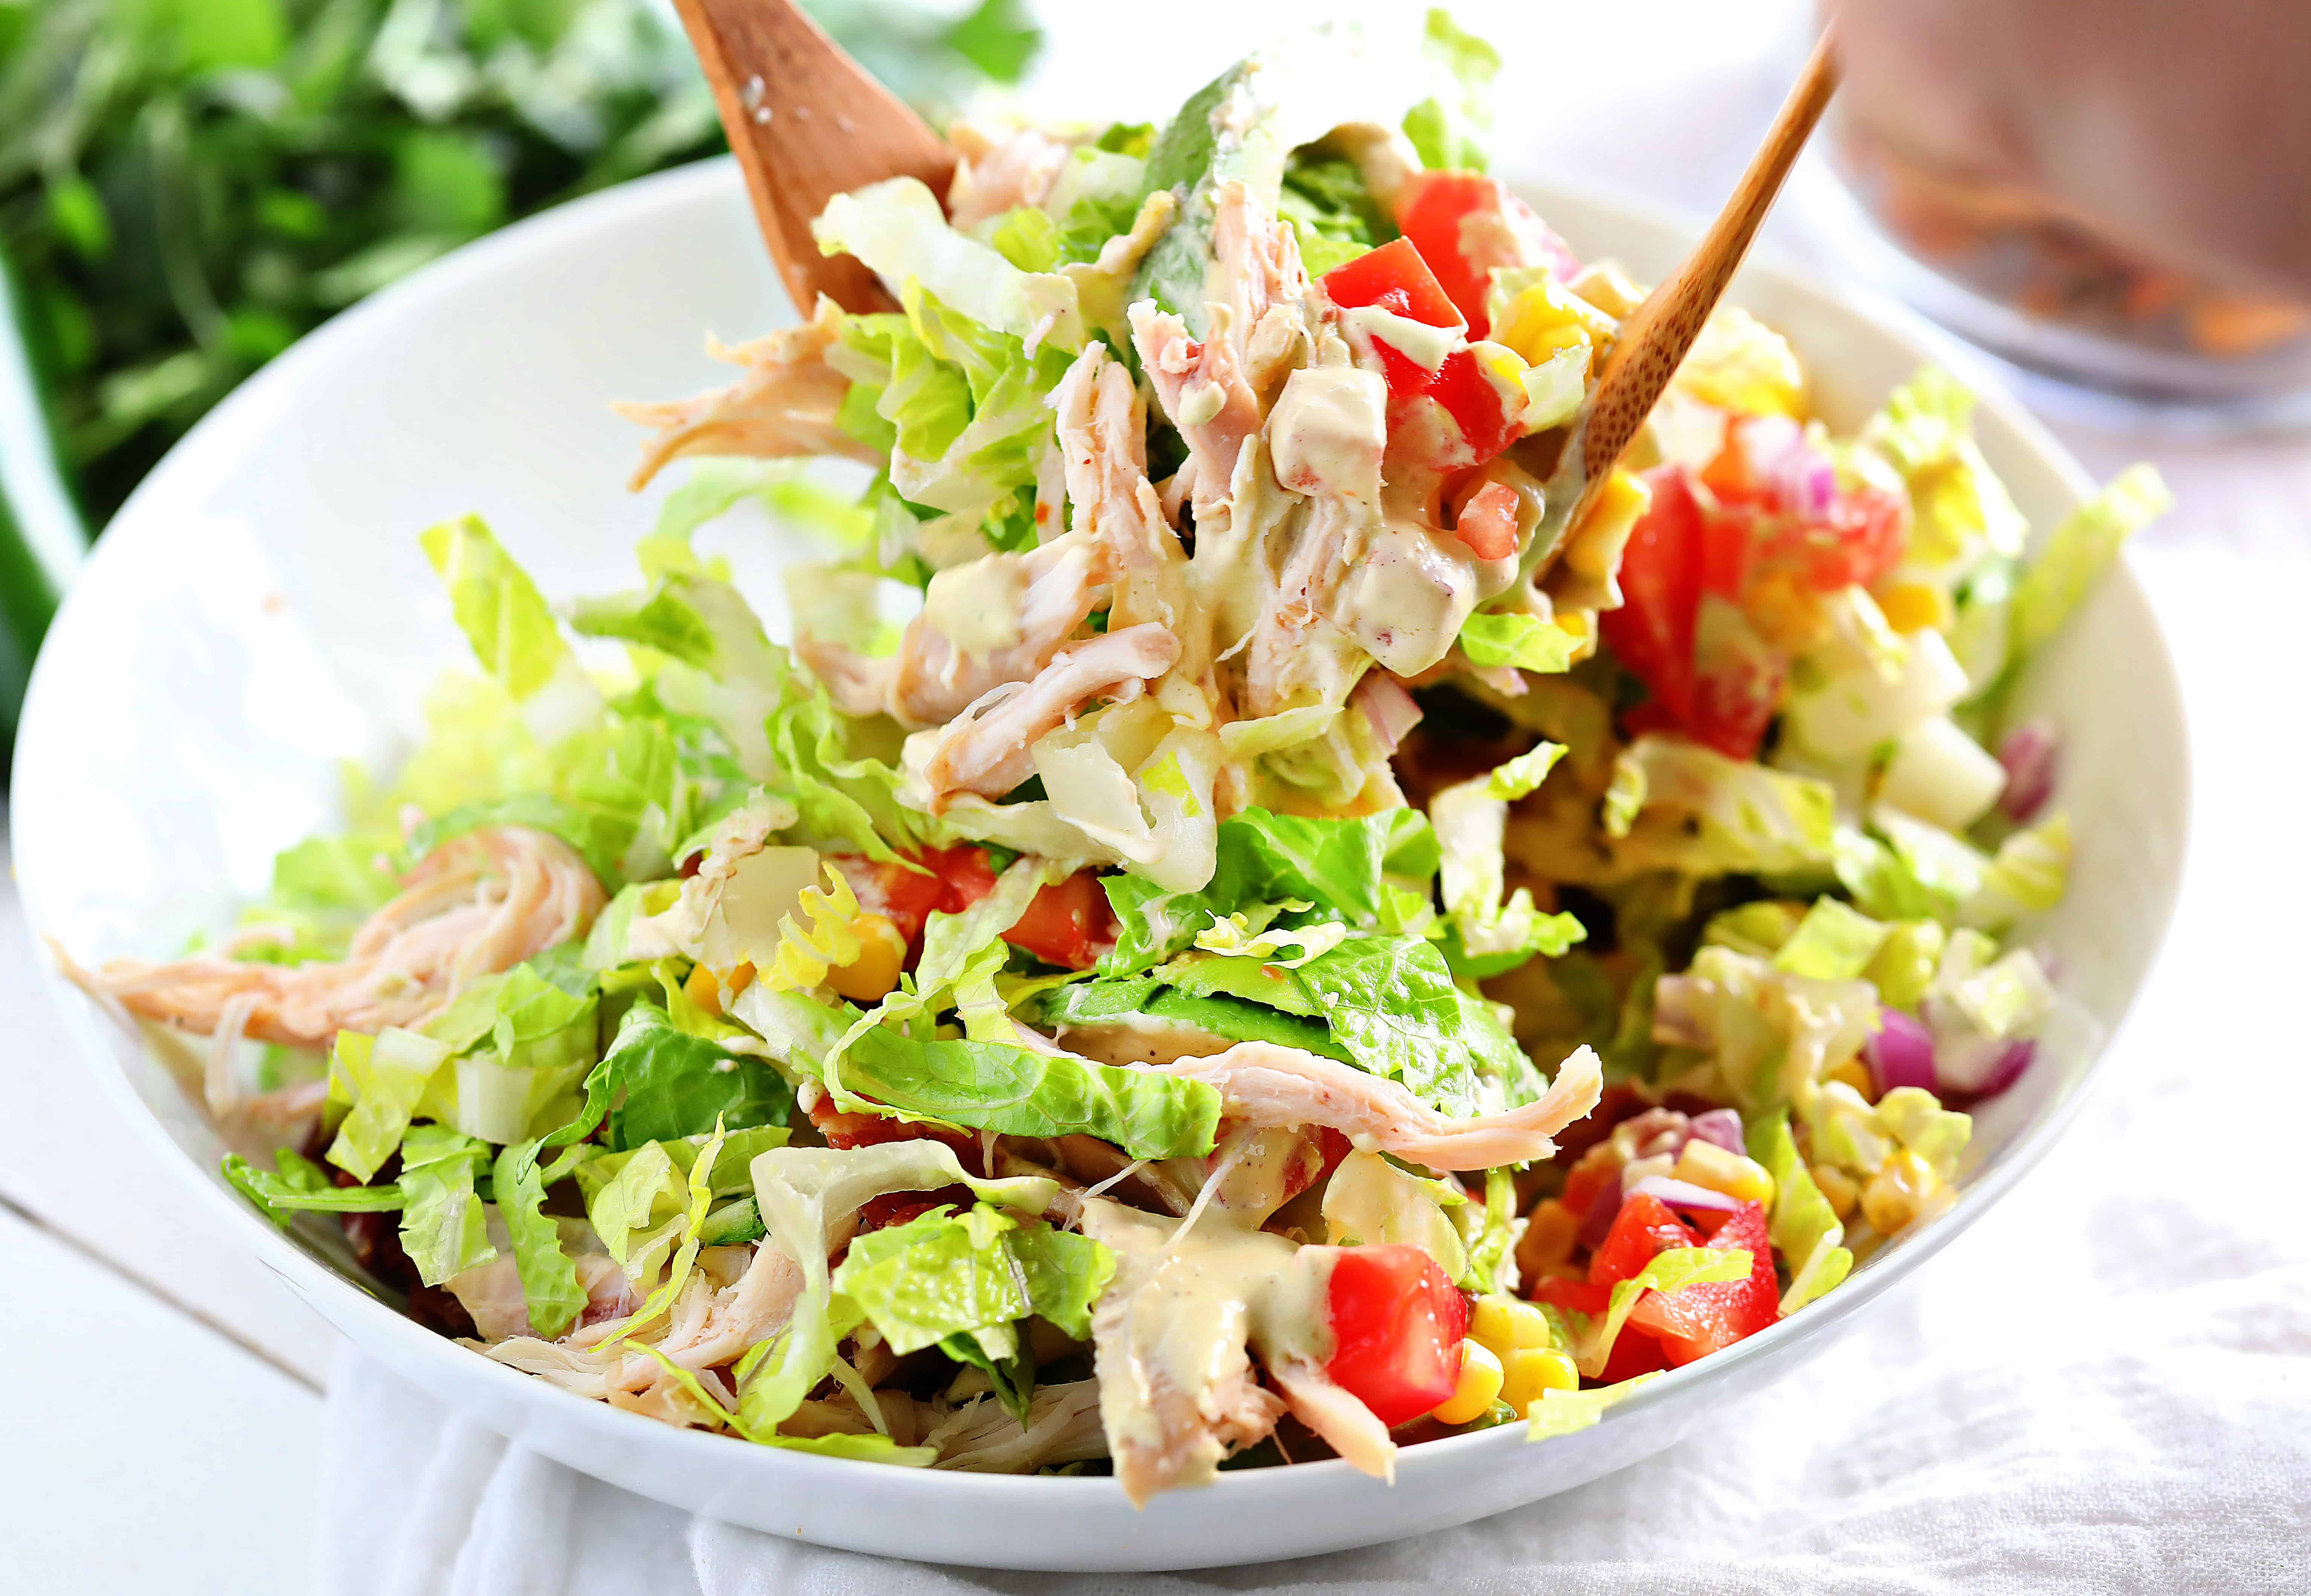 How to Make Chicken Salad with Jalapeno